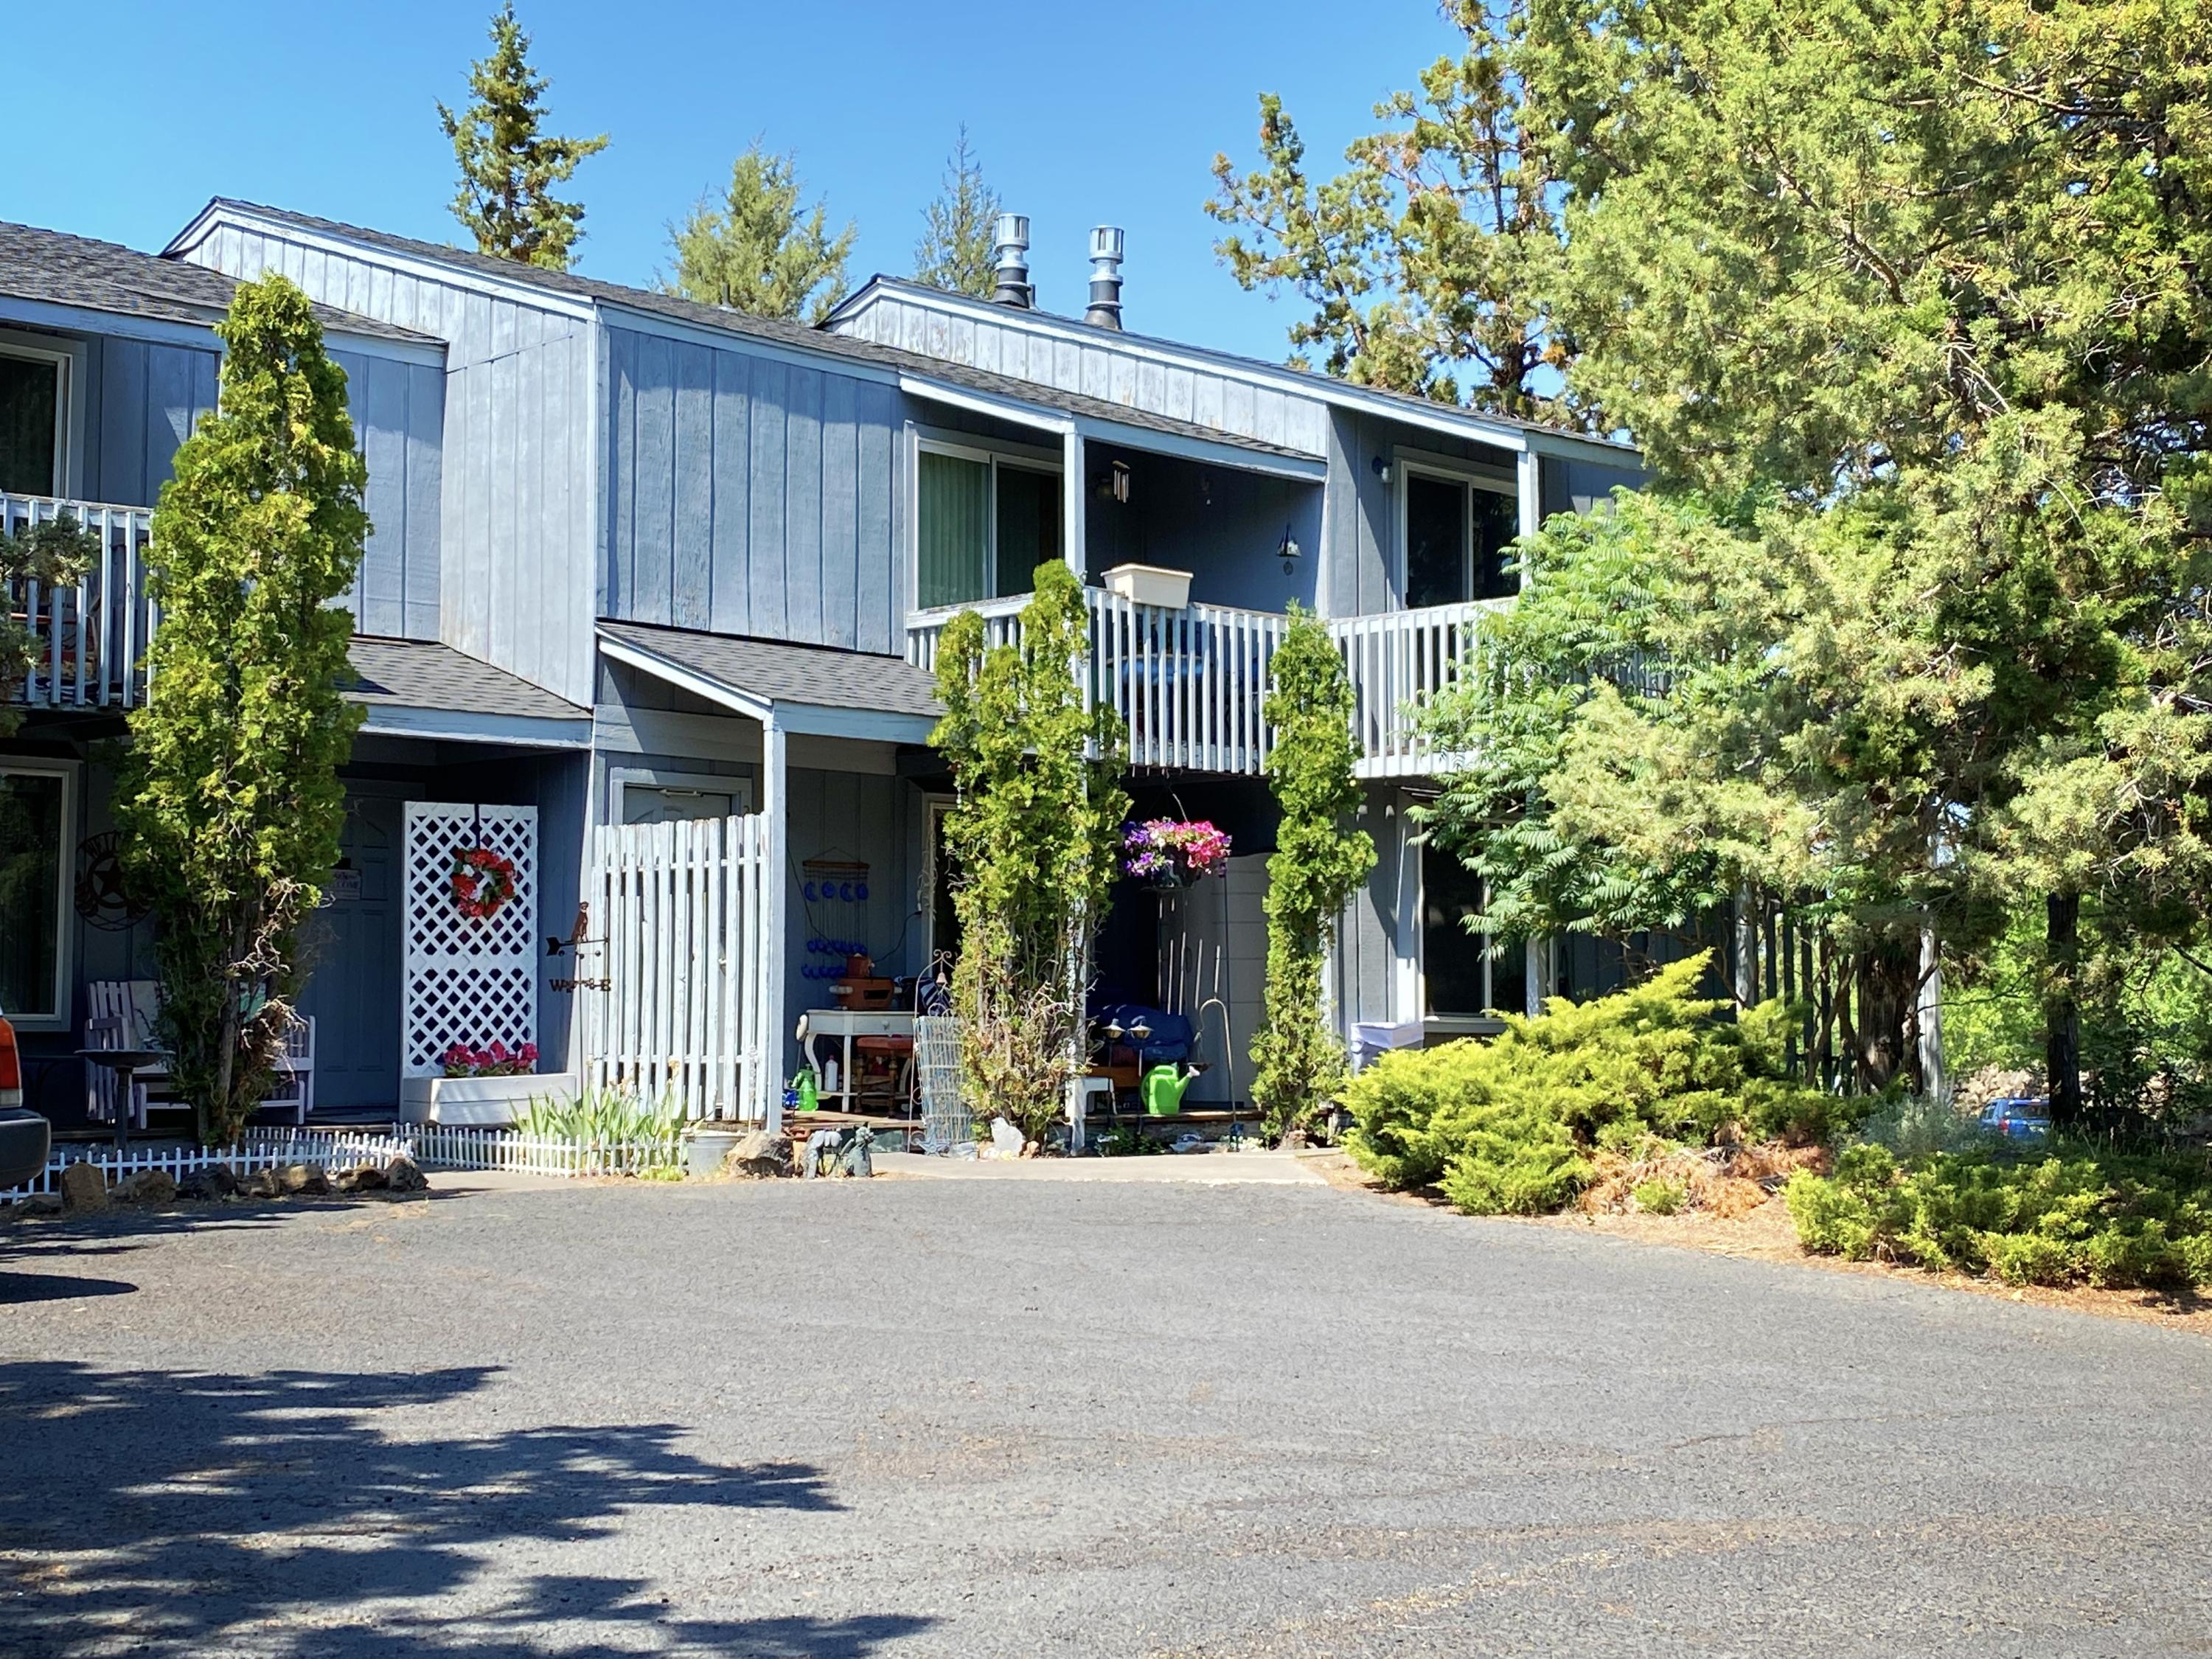 Four-Plex Investment Opportunity in the Heart of Bend's Eastside Medical Community. Each Unit is 2BD/1.5BA. All Units Feature a Fireplace, Laundry Room with Washer Dryer hookups and a Fenced Yard with Sprinkler System. The Property has Long Term Tenancies with Very Little Turn Over History. Currently All Units are Month to Month Rentals. Rents are Far Below Area Comps. Within Walking Distance to the Ensworth Elementary School and Al Moody Park. Also in close proximity to St. Charles Hospital, the Med Centers and Costco. Property has Deferred Maintenance. Property is Being Sold Under Market and As Is. Opportunity for ''Fixer'' Owner. Current Owner Pays Water, Sewer & Garbage.